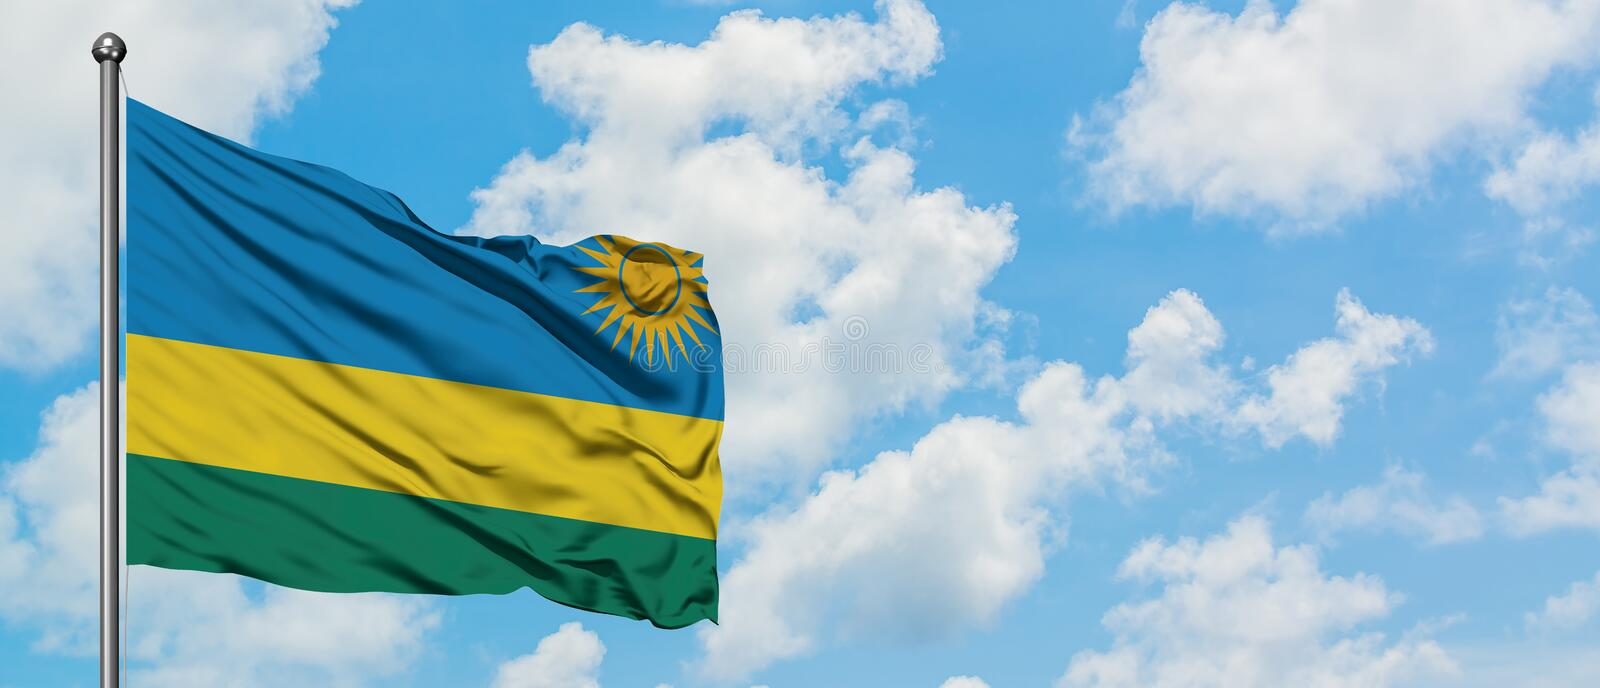 Rwanda flag waving in the wind against white cloudy blue sky. Diplomacy concept, international relations.  royalty free stock photo